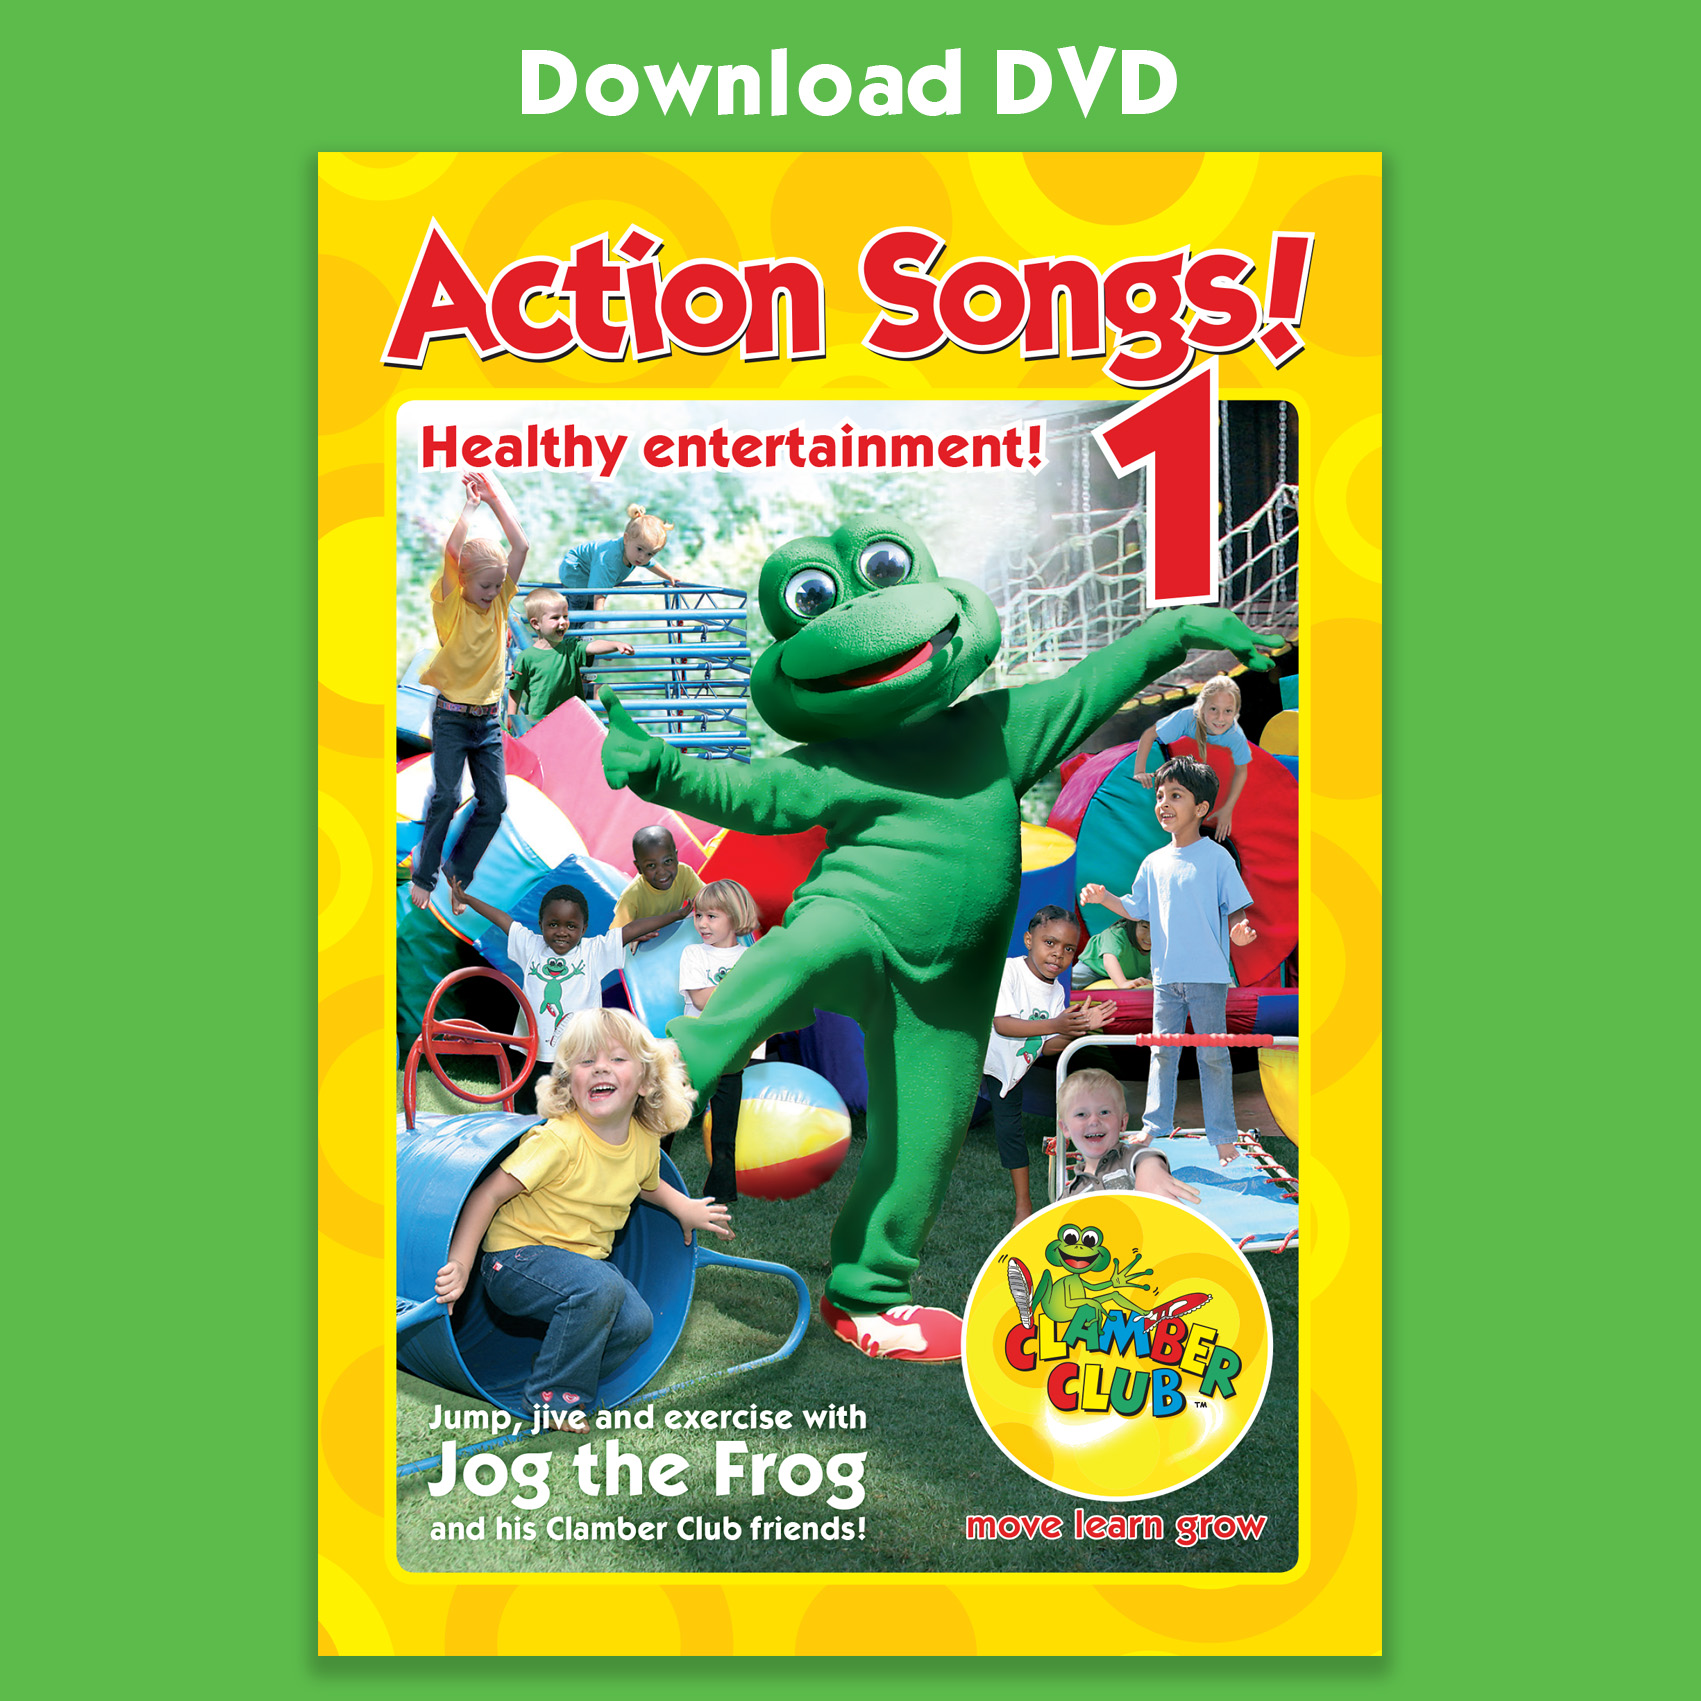 Fitness Dvd For Very Unfit: Action Songs Video